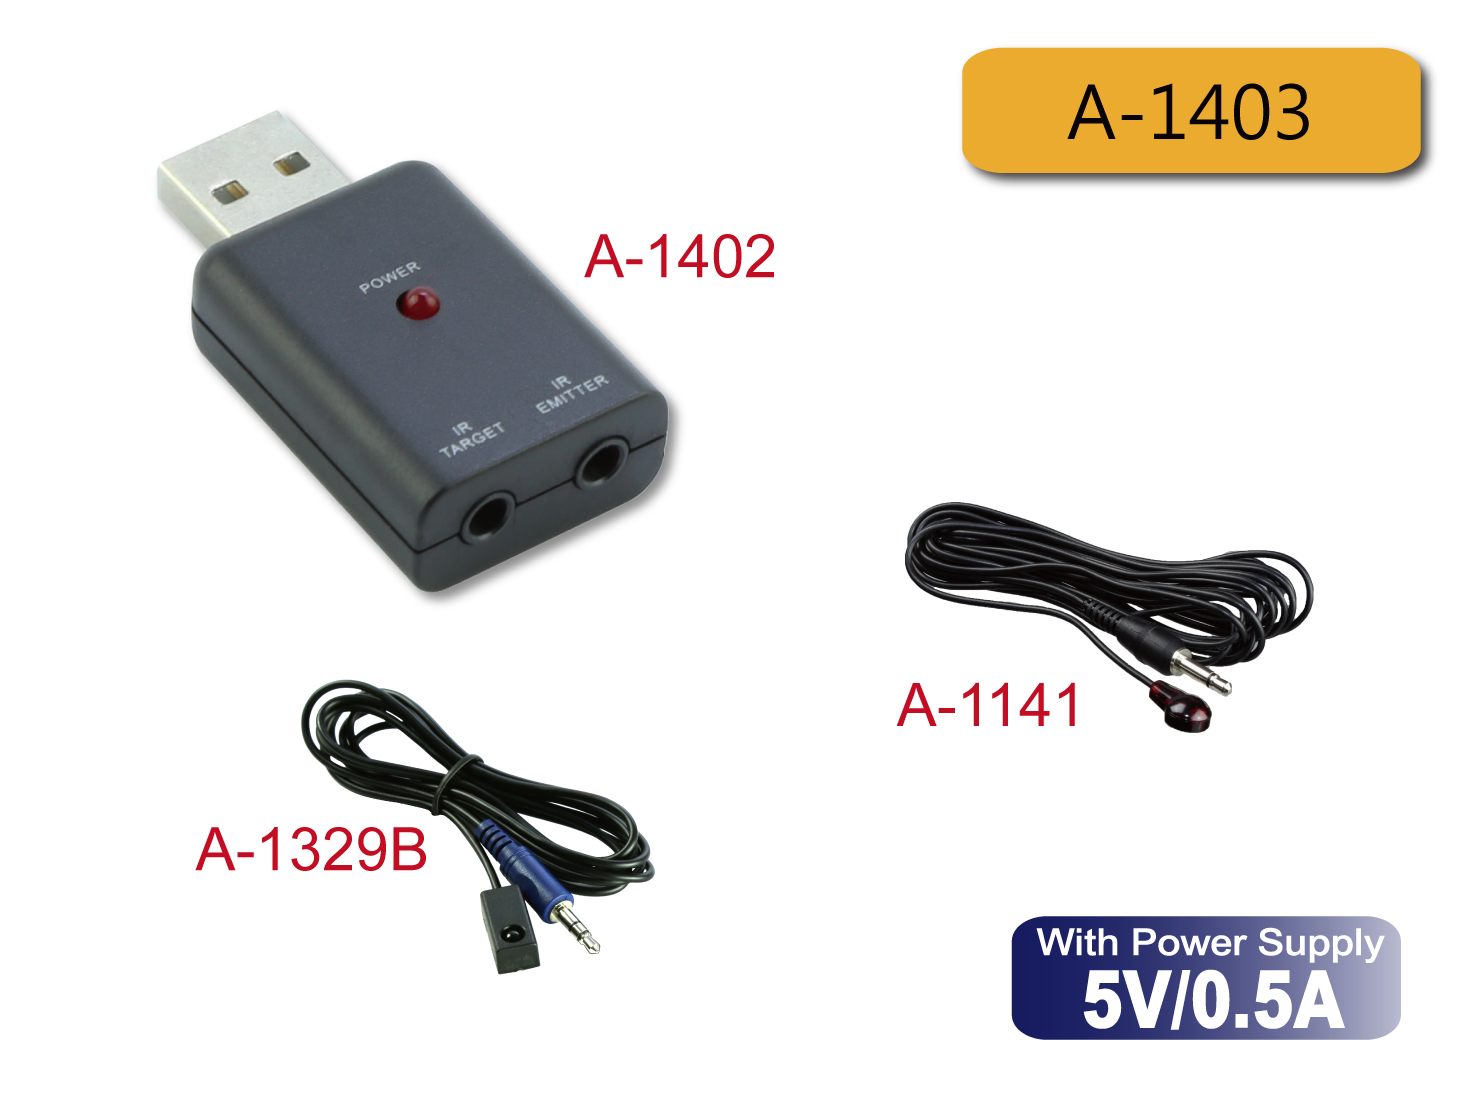 A-1403 : USB Powered IR Repeater Kit